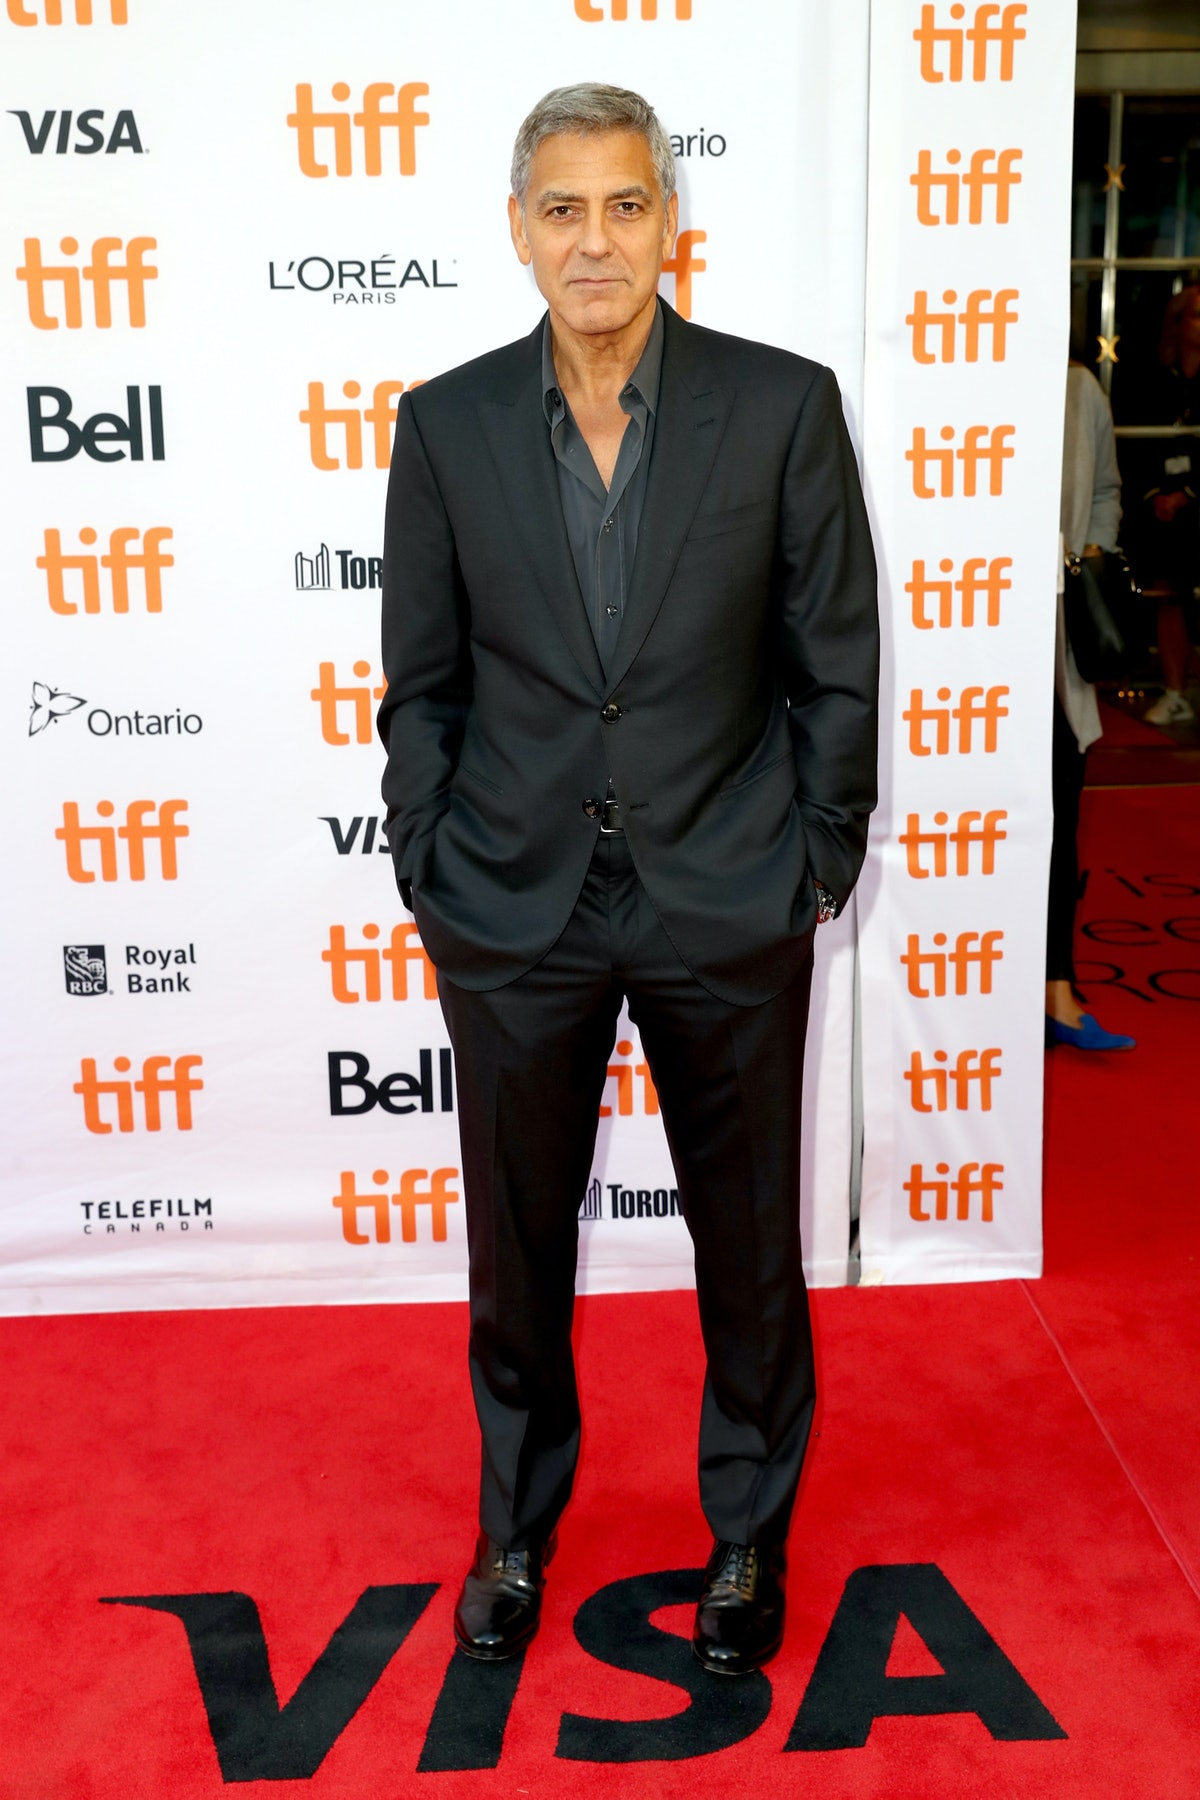 George Clooney in a black suit